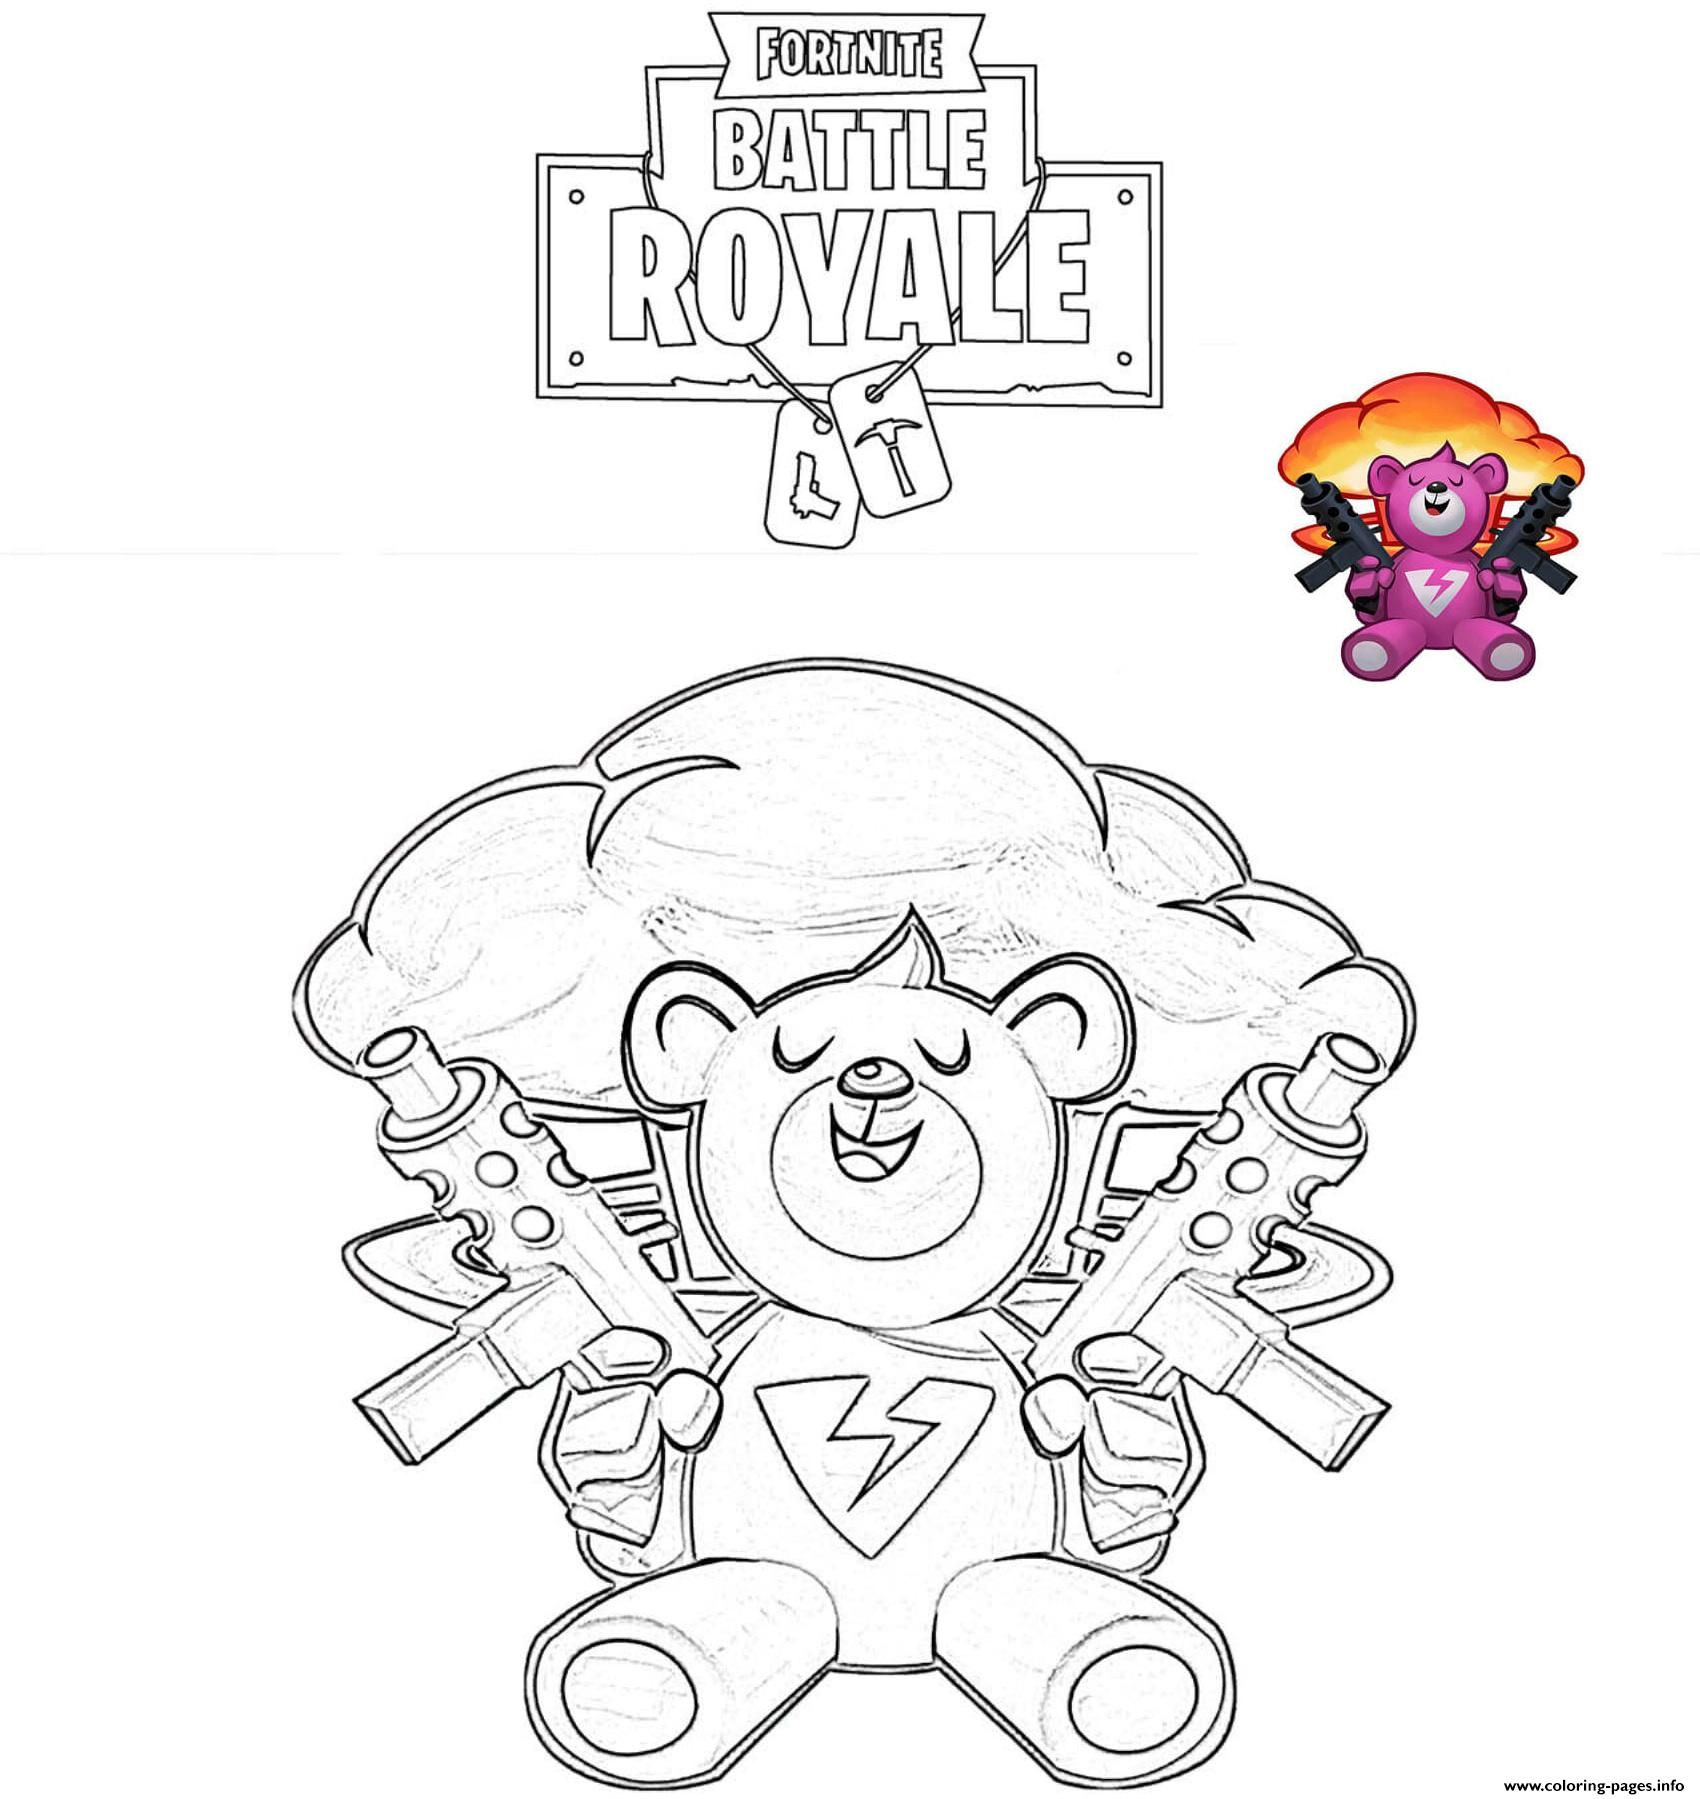 Print Brite Bomber Fortnite Battle Royale Coloring Pages Cartoon